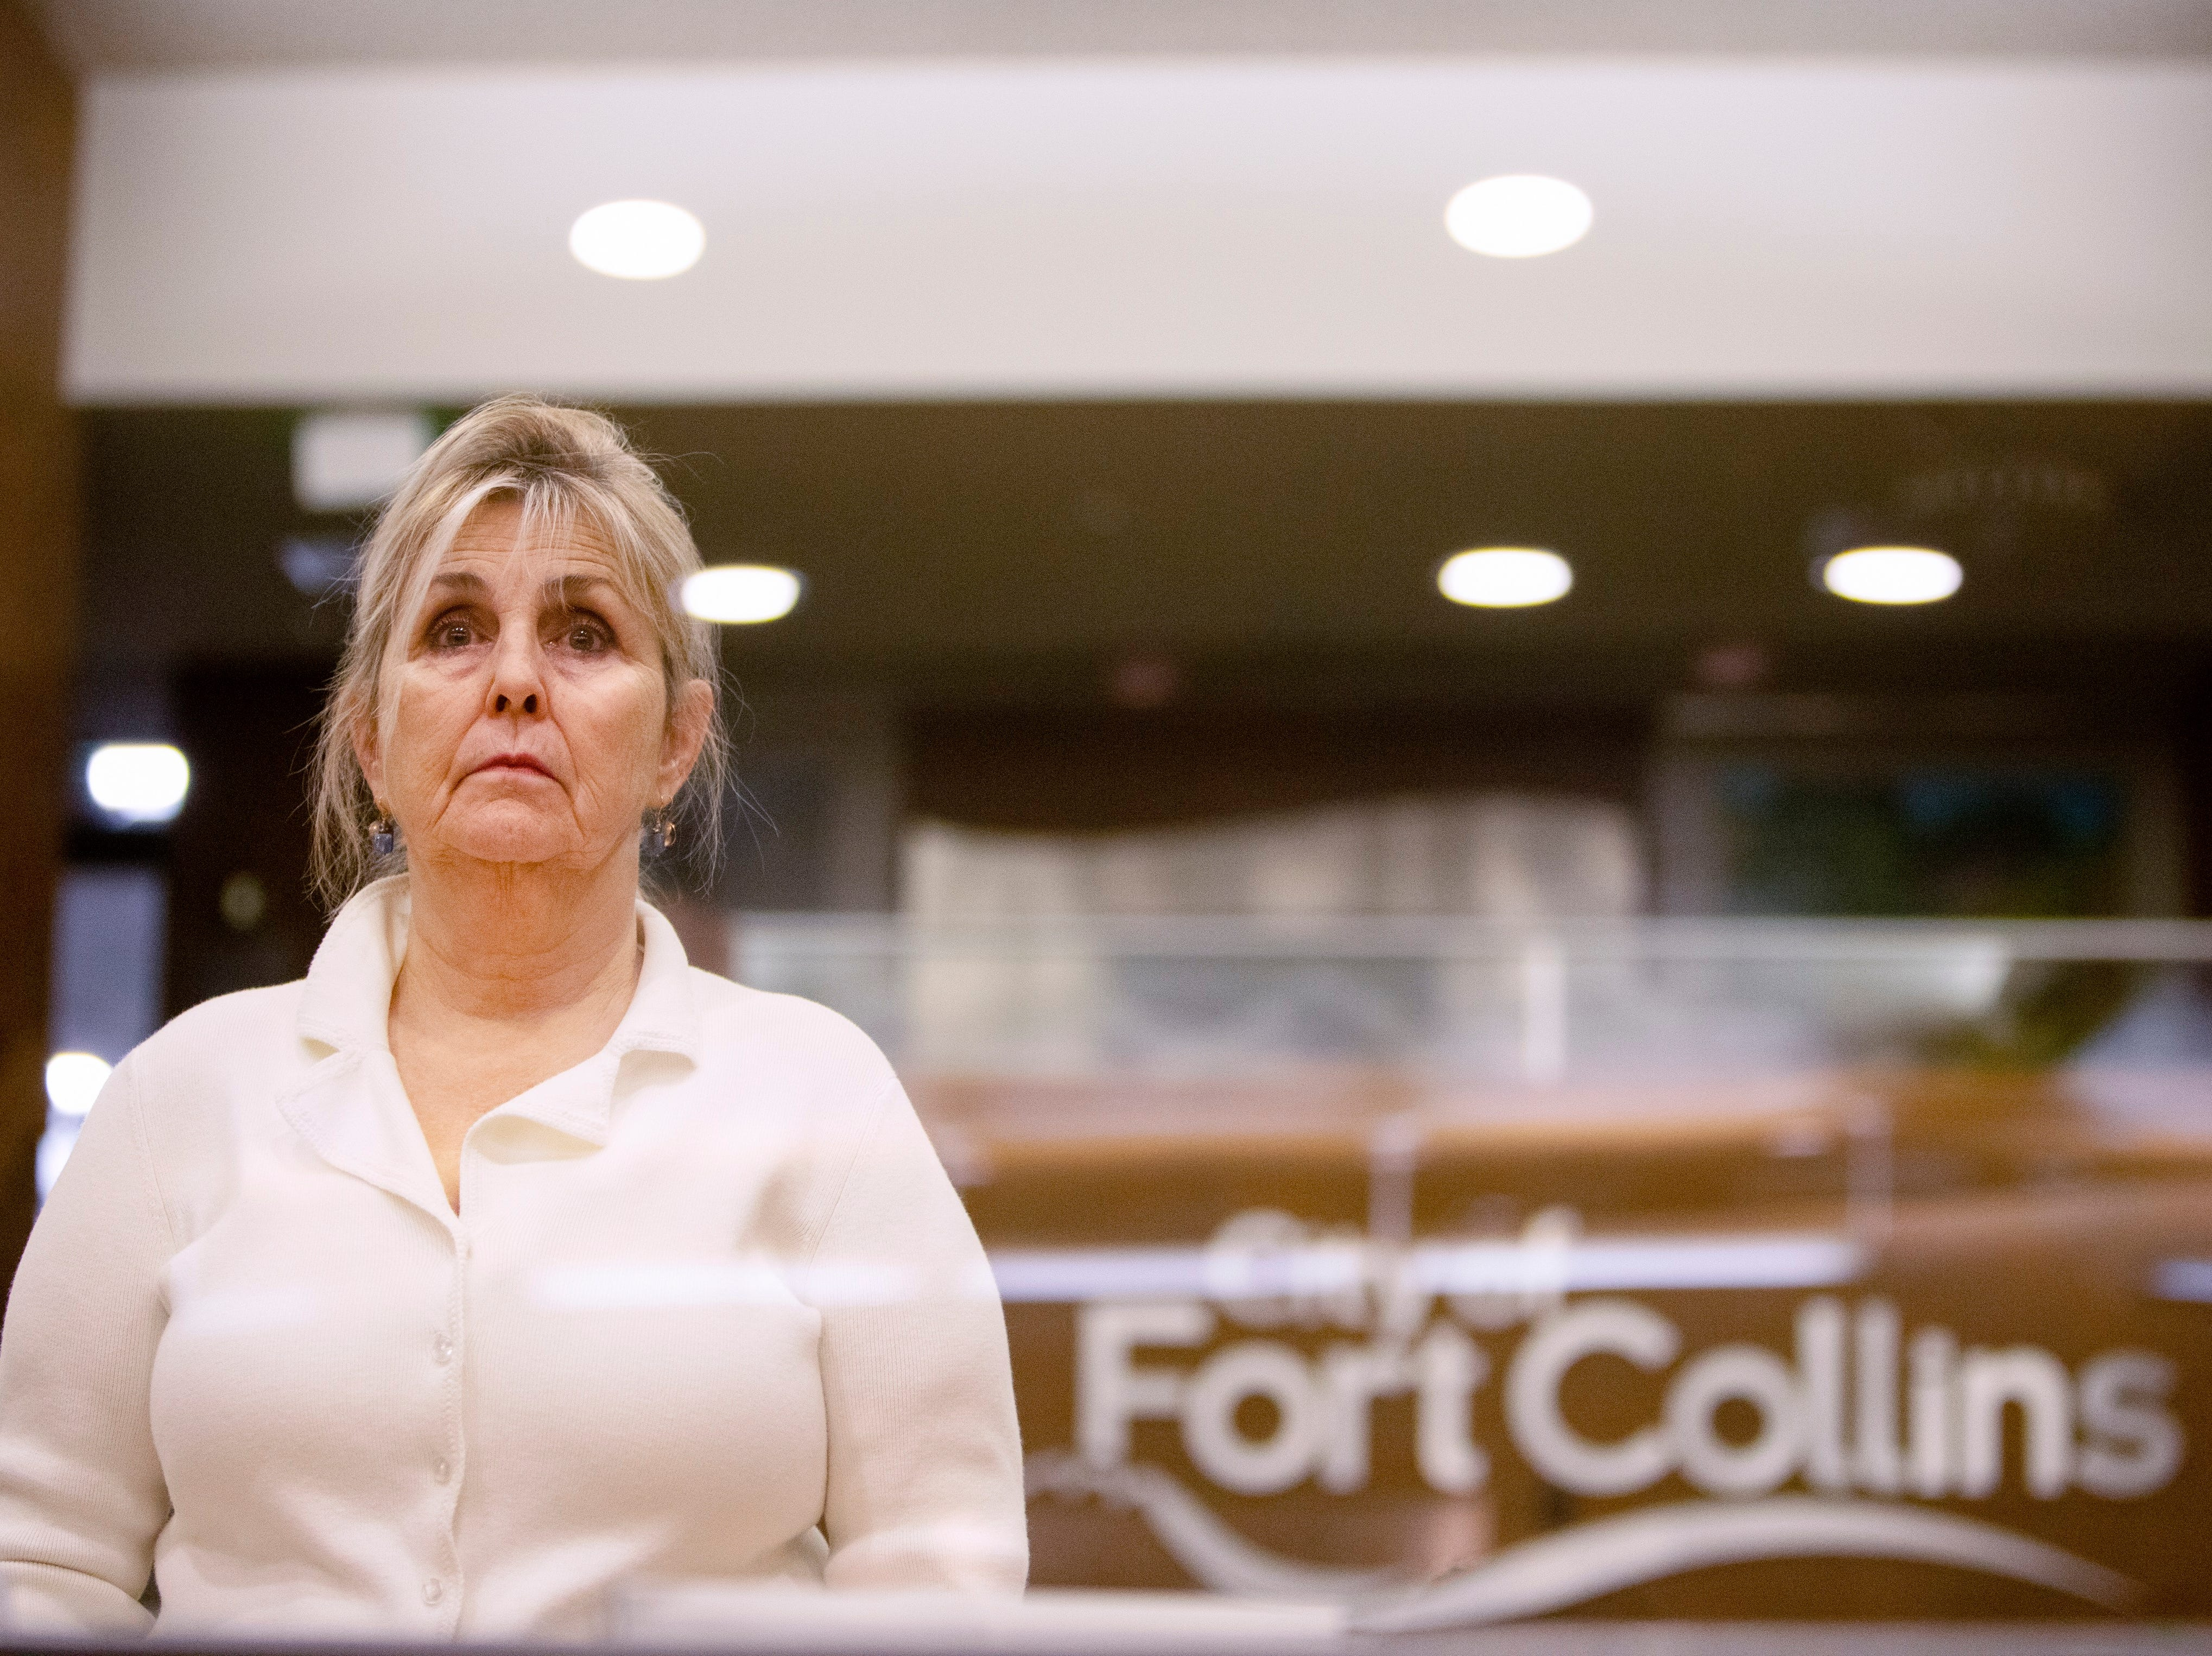 City Council candidate Susan Holmes watches as the first tier of candidates discuss issues facing the city during the forum hosted by The League of Women Voters of Larimer County at City Hall on March 6.